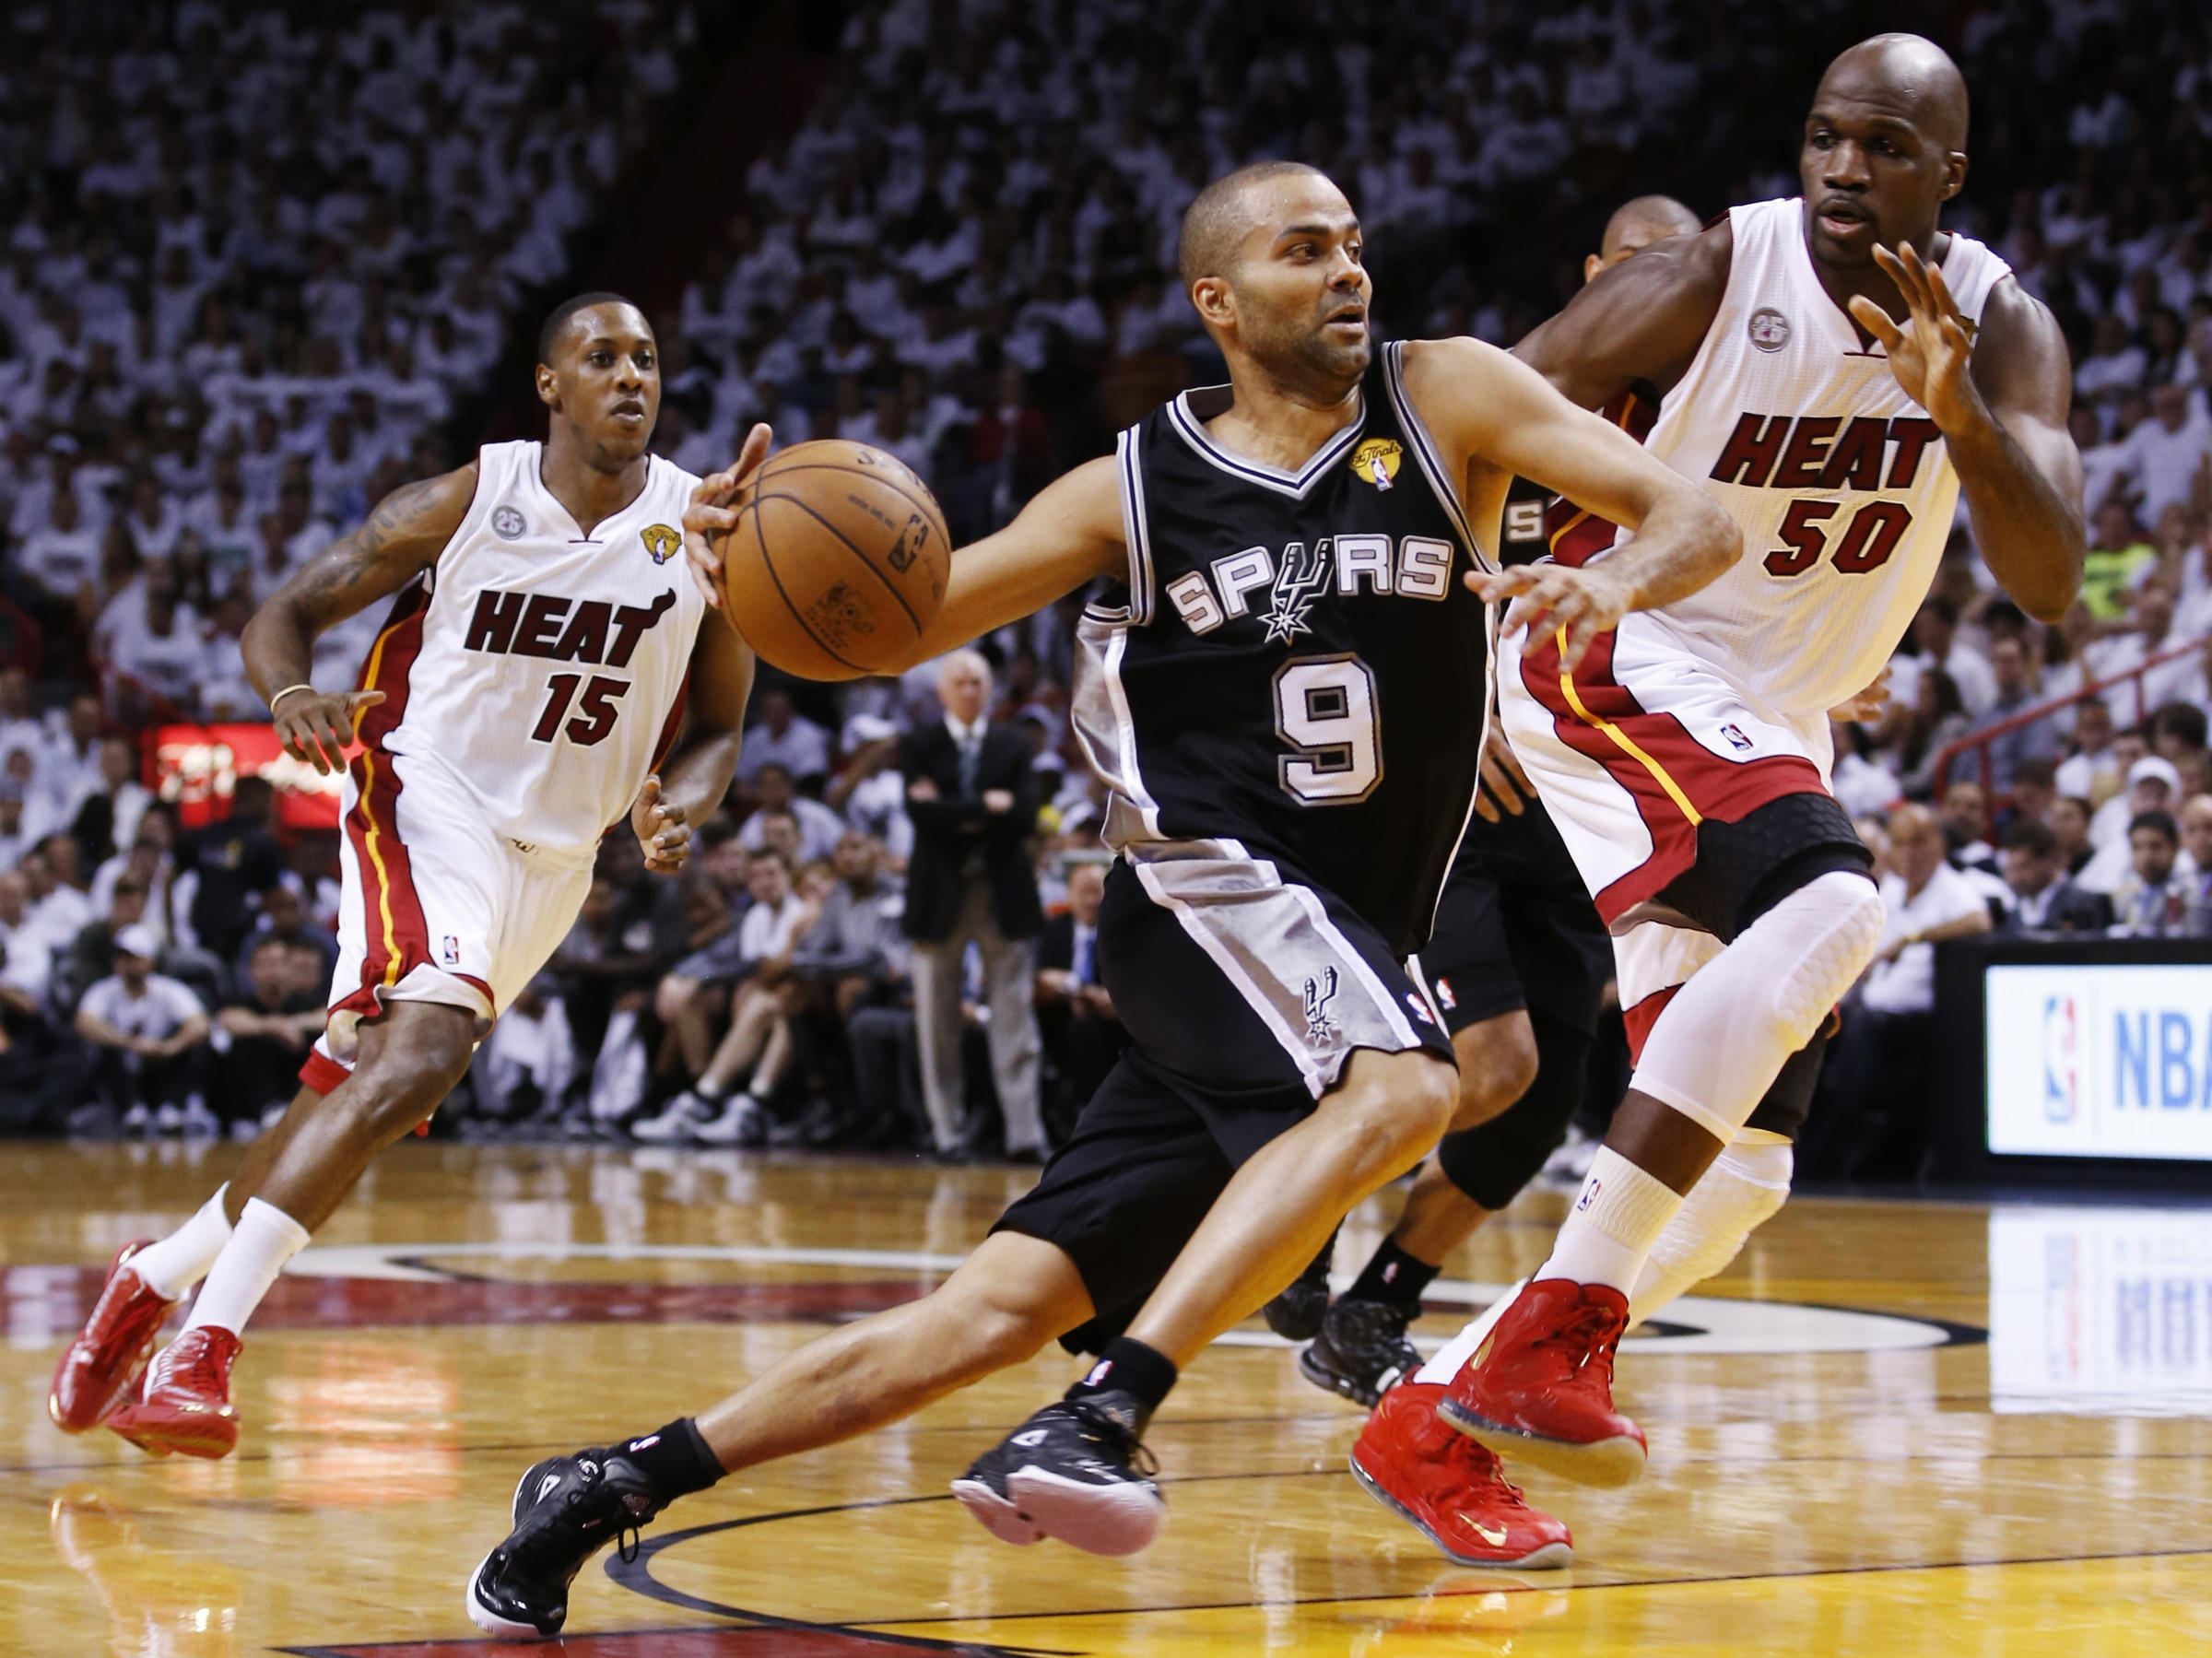 3bfc26fe411a Tony Parker of the San Antonio Spurs during Thursday night s first game of  the NBA finals in Miami. The Spurs beat the Miami Heat